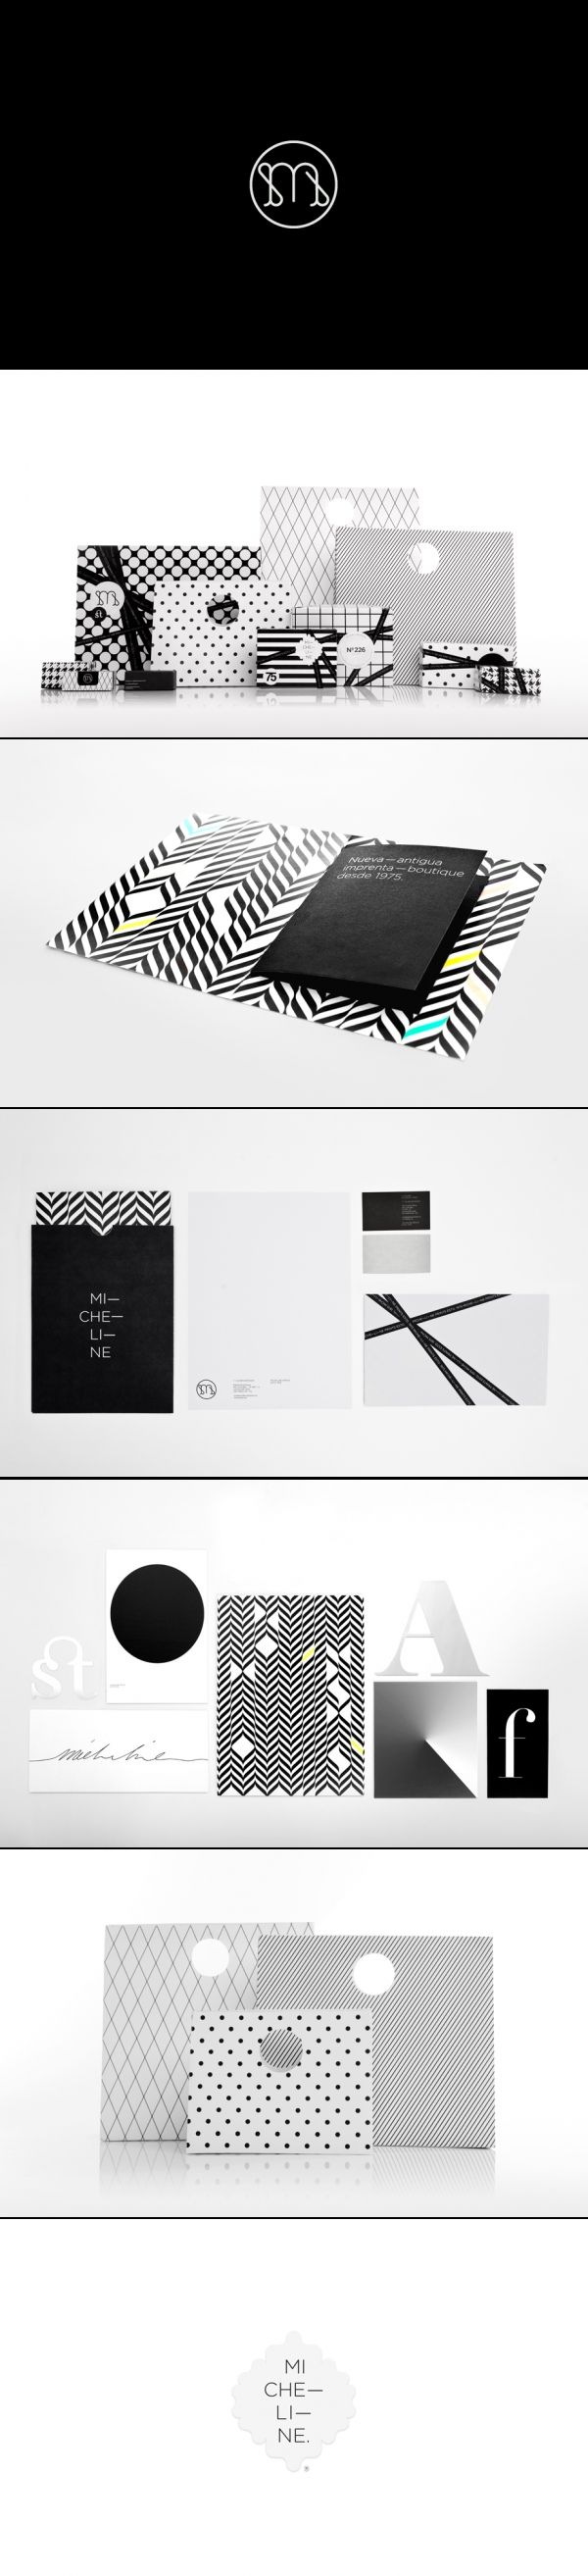 visual identity | Micheline | Anagrama stellar in black and white #packaging #branding